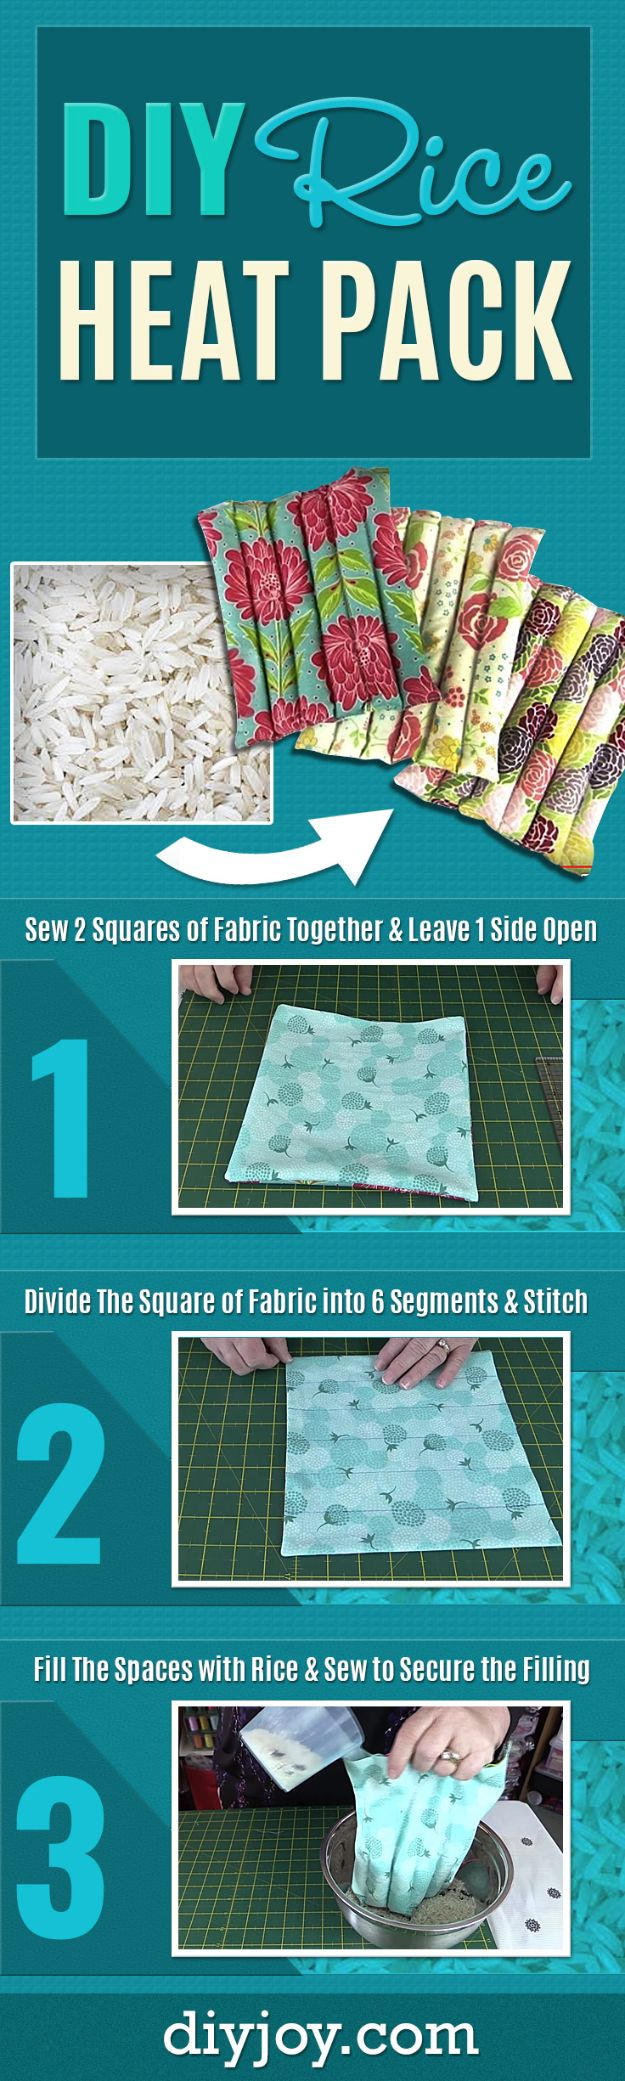 Cheap Last Minute Gifts DIY - DIY Rice Heat Pack - Inexpensive DIY Gift Ideas To Make On A Budget - Homemade Christmas and Birthday Presents to Make For Mom, Dad, Daughter & Son, Kids, Friends and Family - Cool and Creative Crafts, Home Decor and Accessories, Fun Gadgets and Phone Stuff - Quick Gifts From Dollar Tree Items http://diyjoy.com/cheap-last-minute-gifts